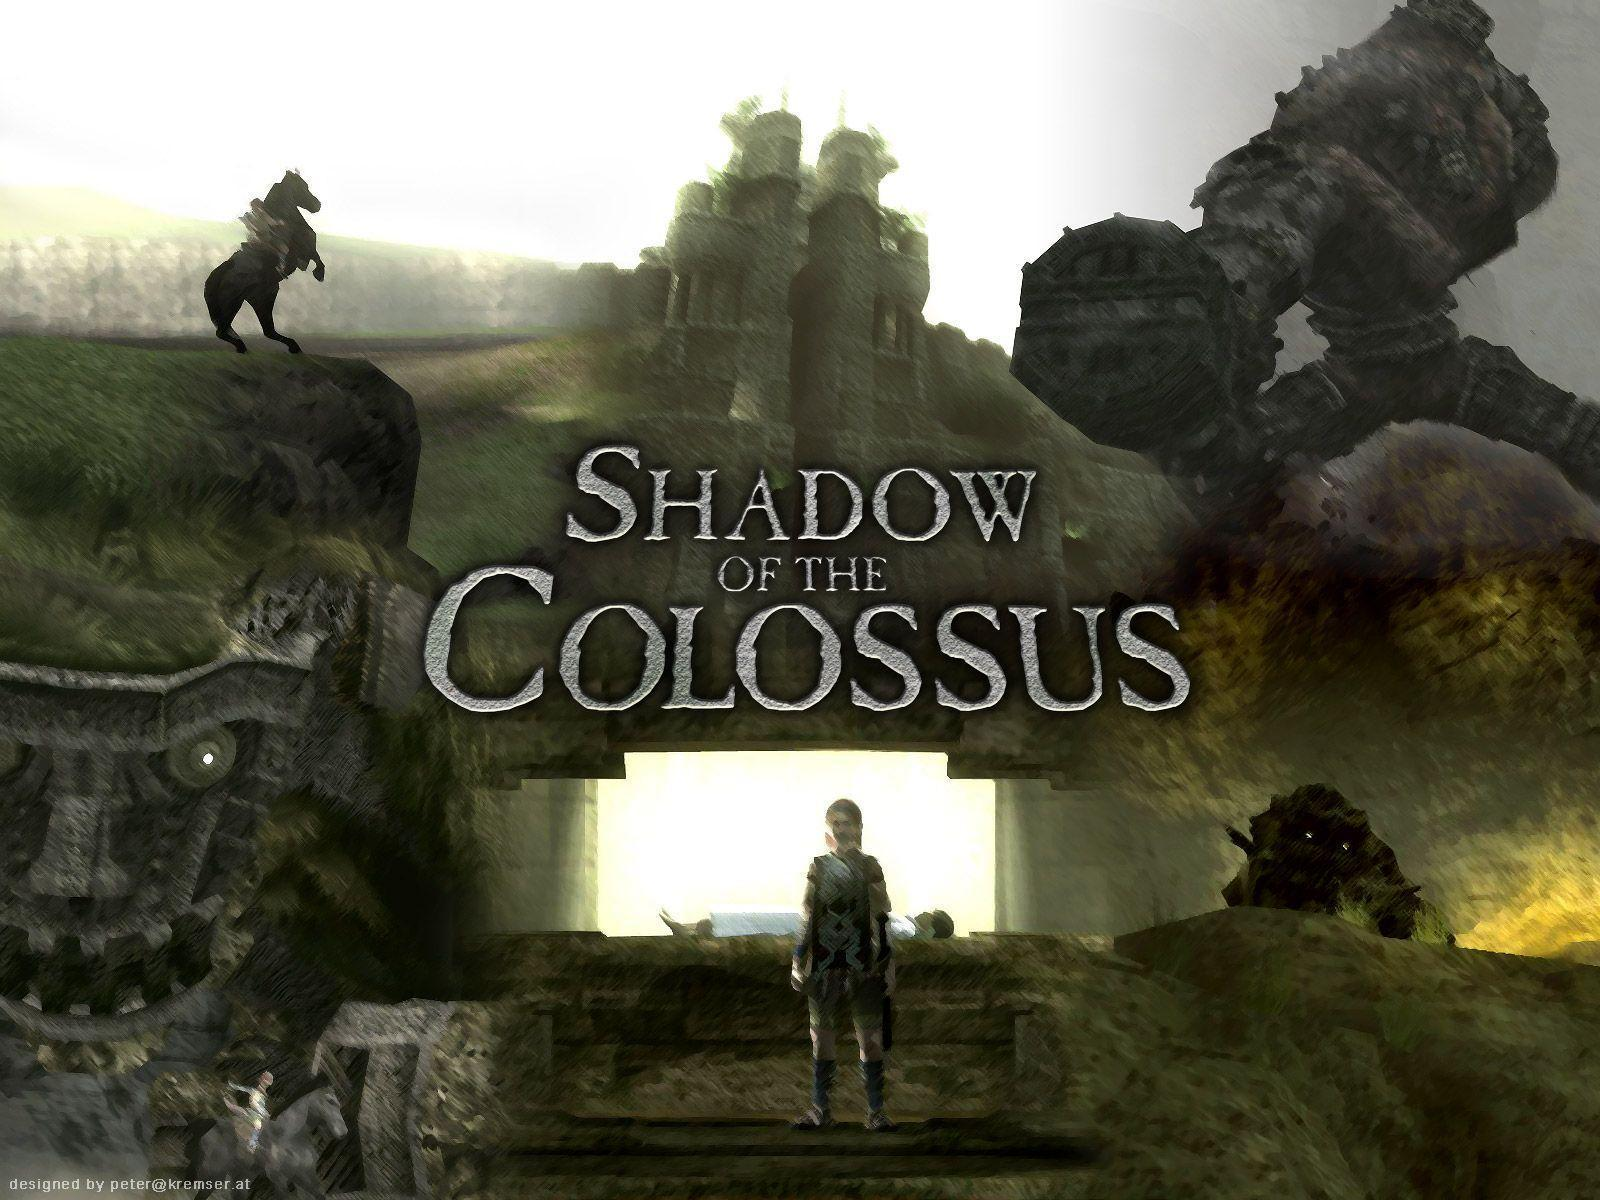 17 Best images about Shadow of the Colossus on Pinterest | Art ...